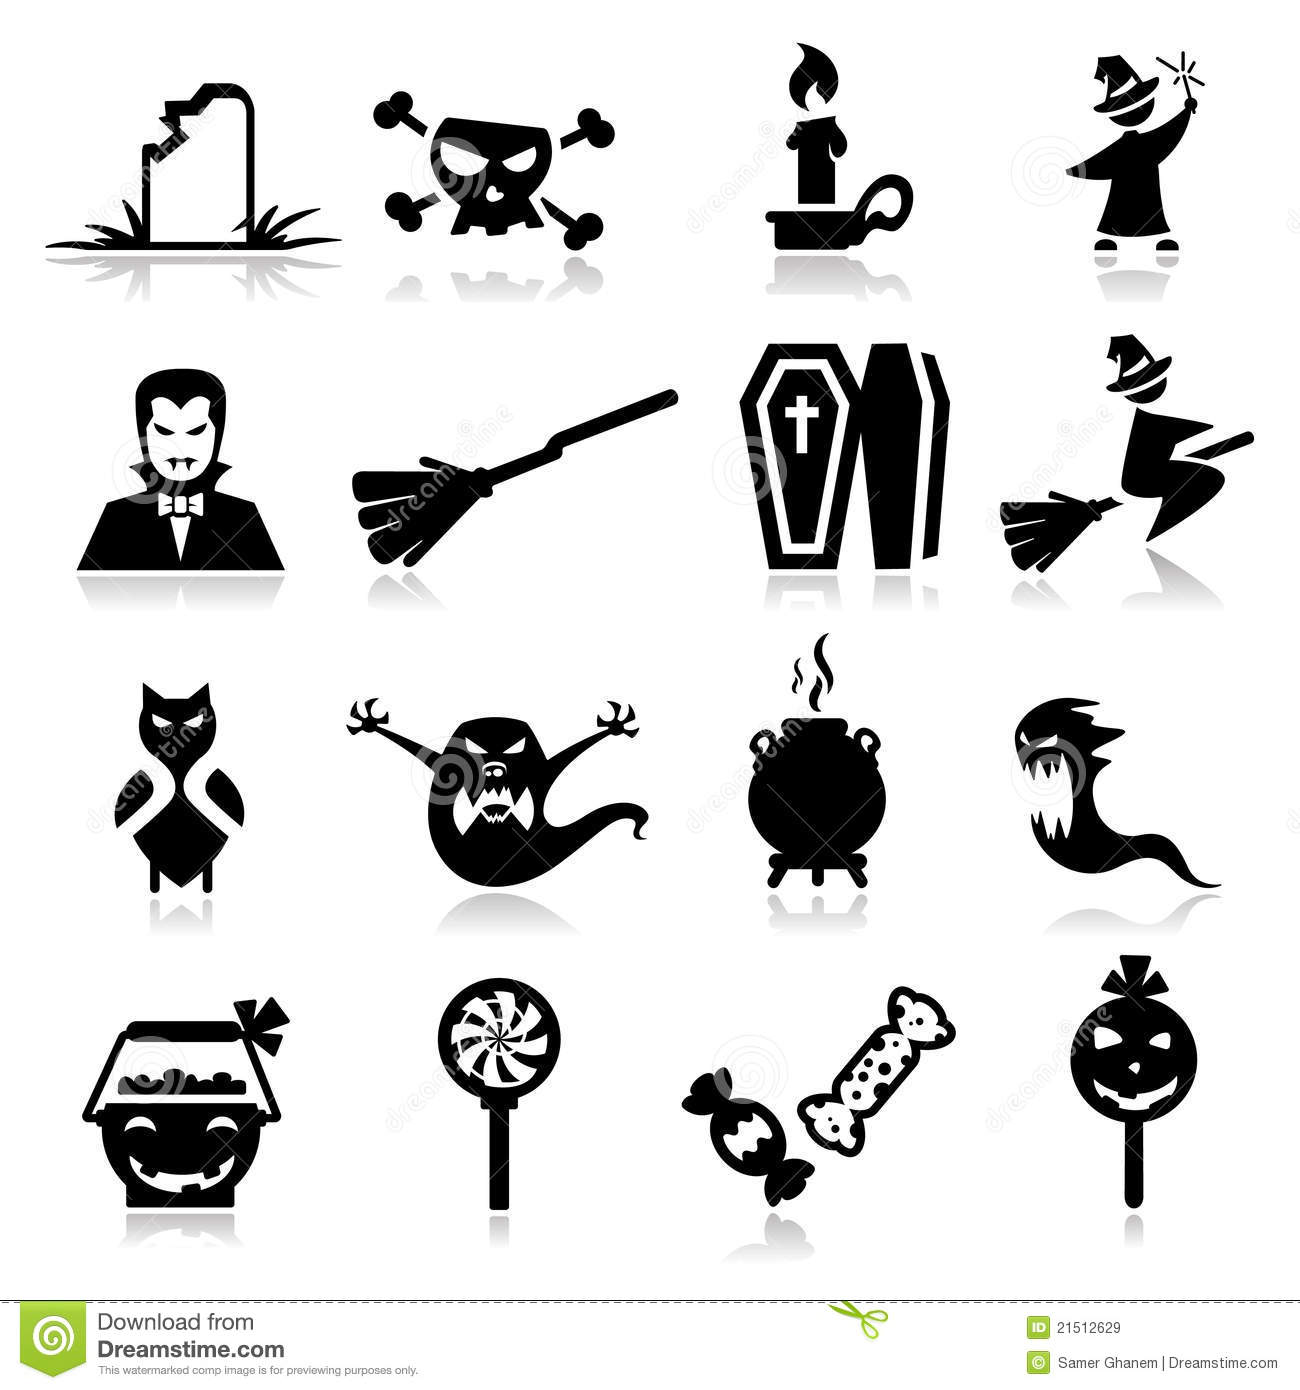 Royalty Free Stock Images Horror Icons Image21512629 together with Skeleton additionally Bat in addition 107497453033390230910 additionally Alien. on objects in space scary